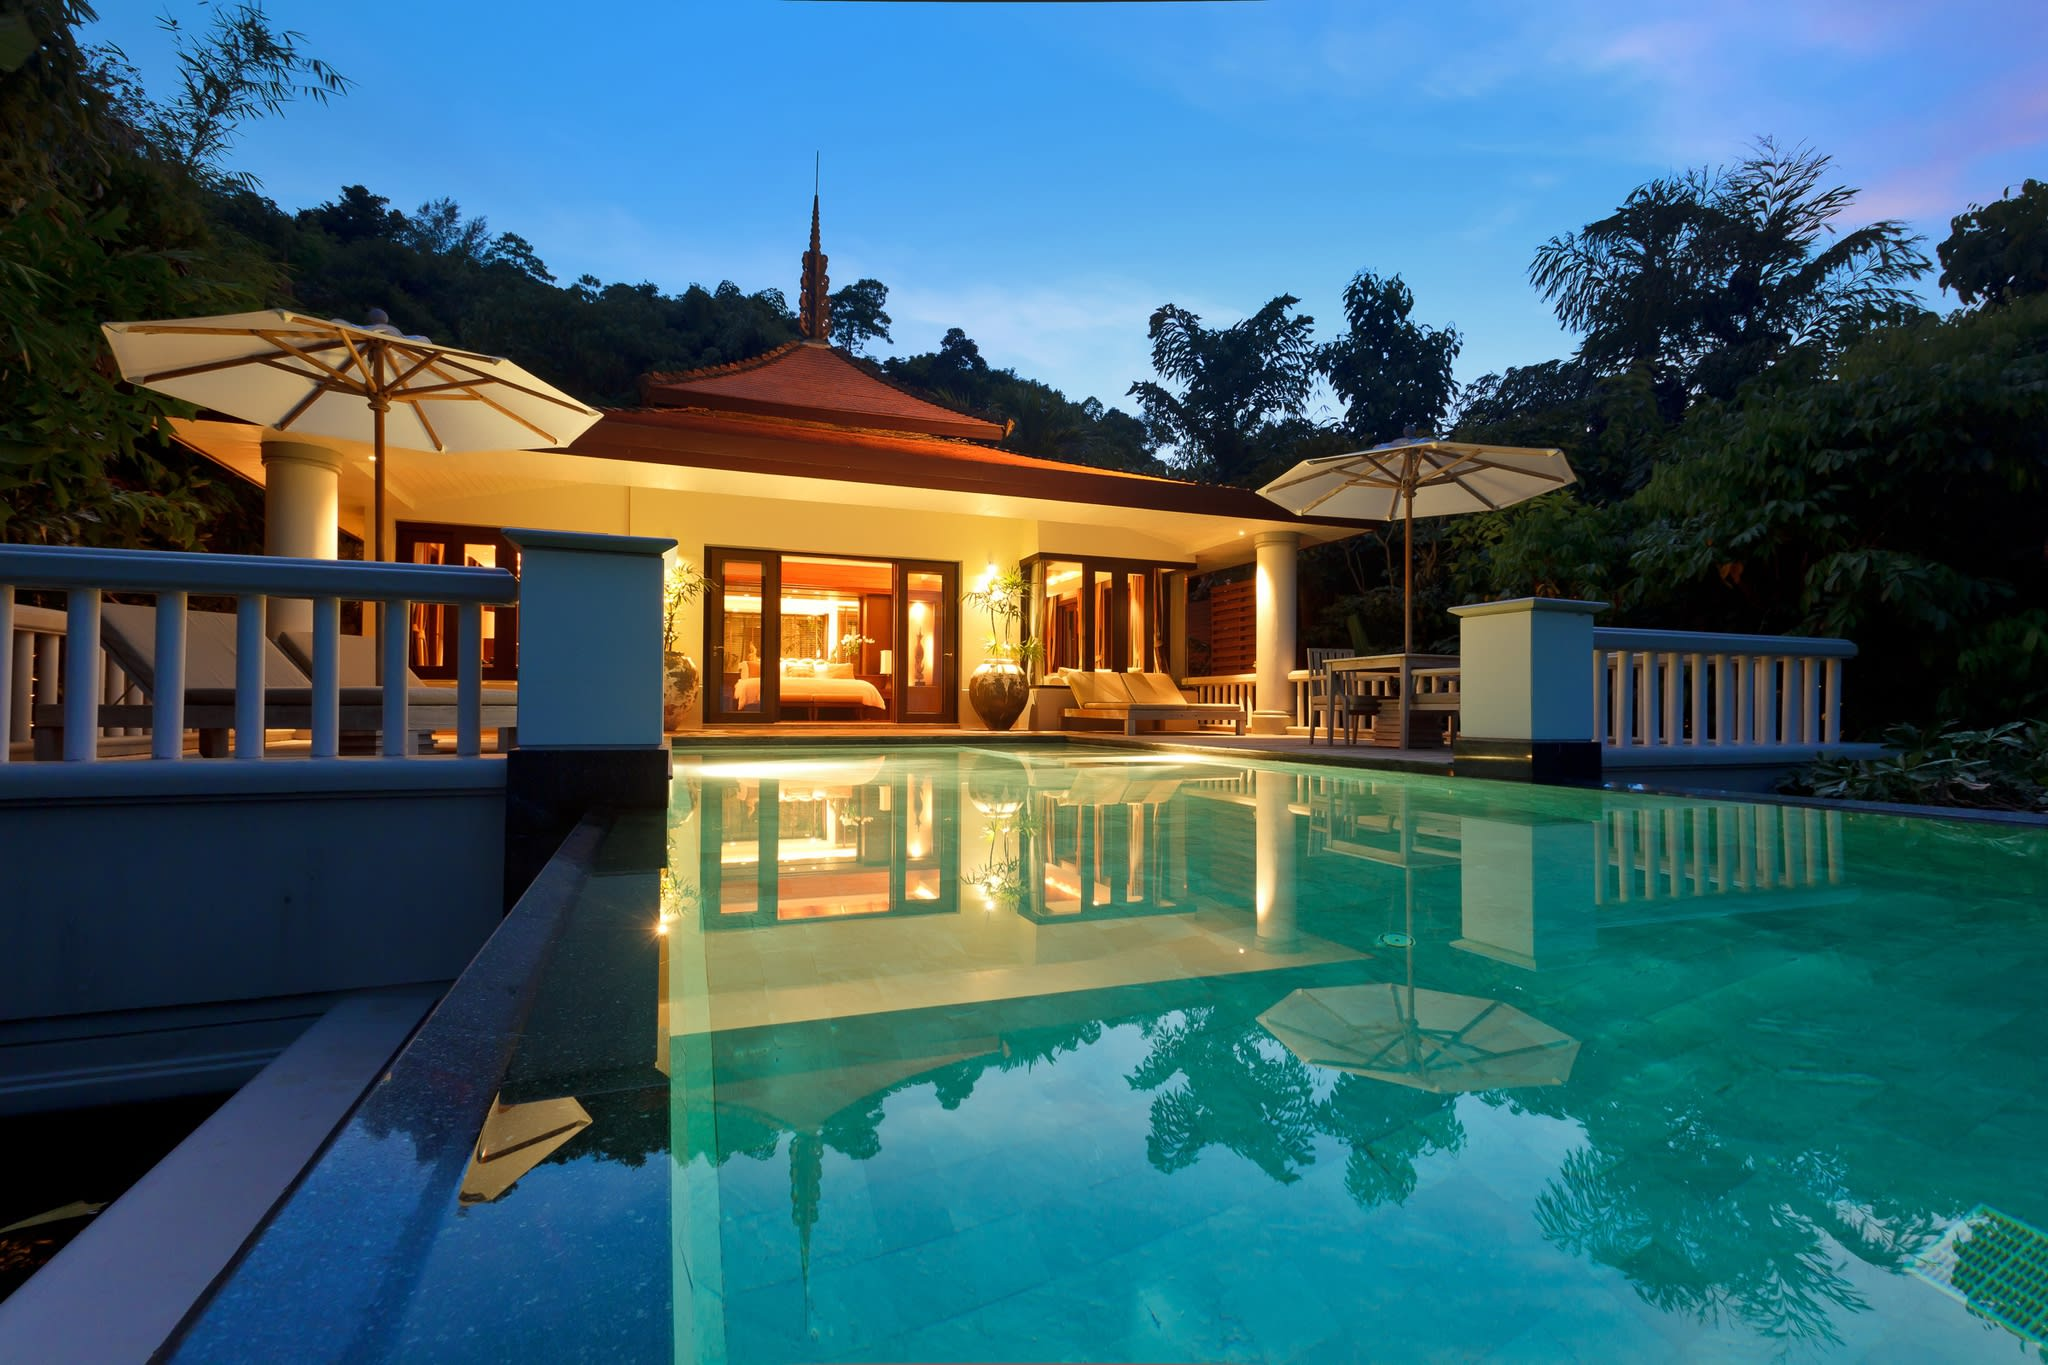 Villa with outdoor decking and swimming pool surrounded by trees